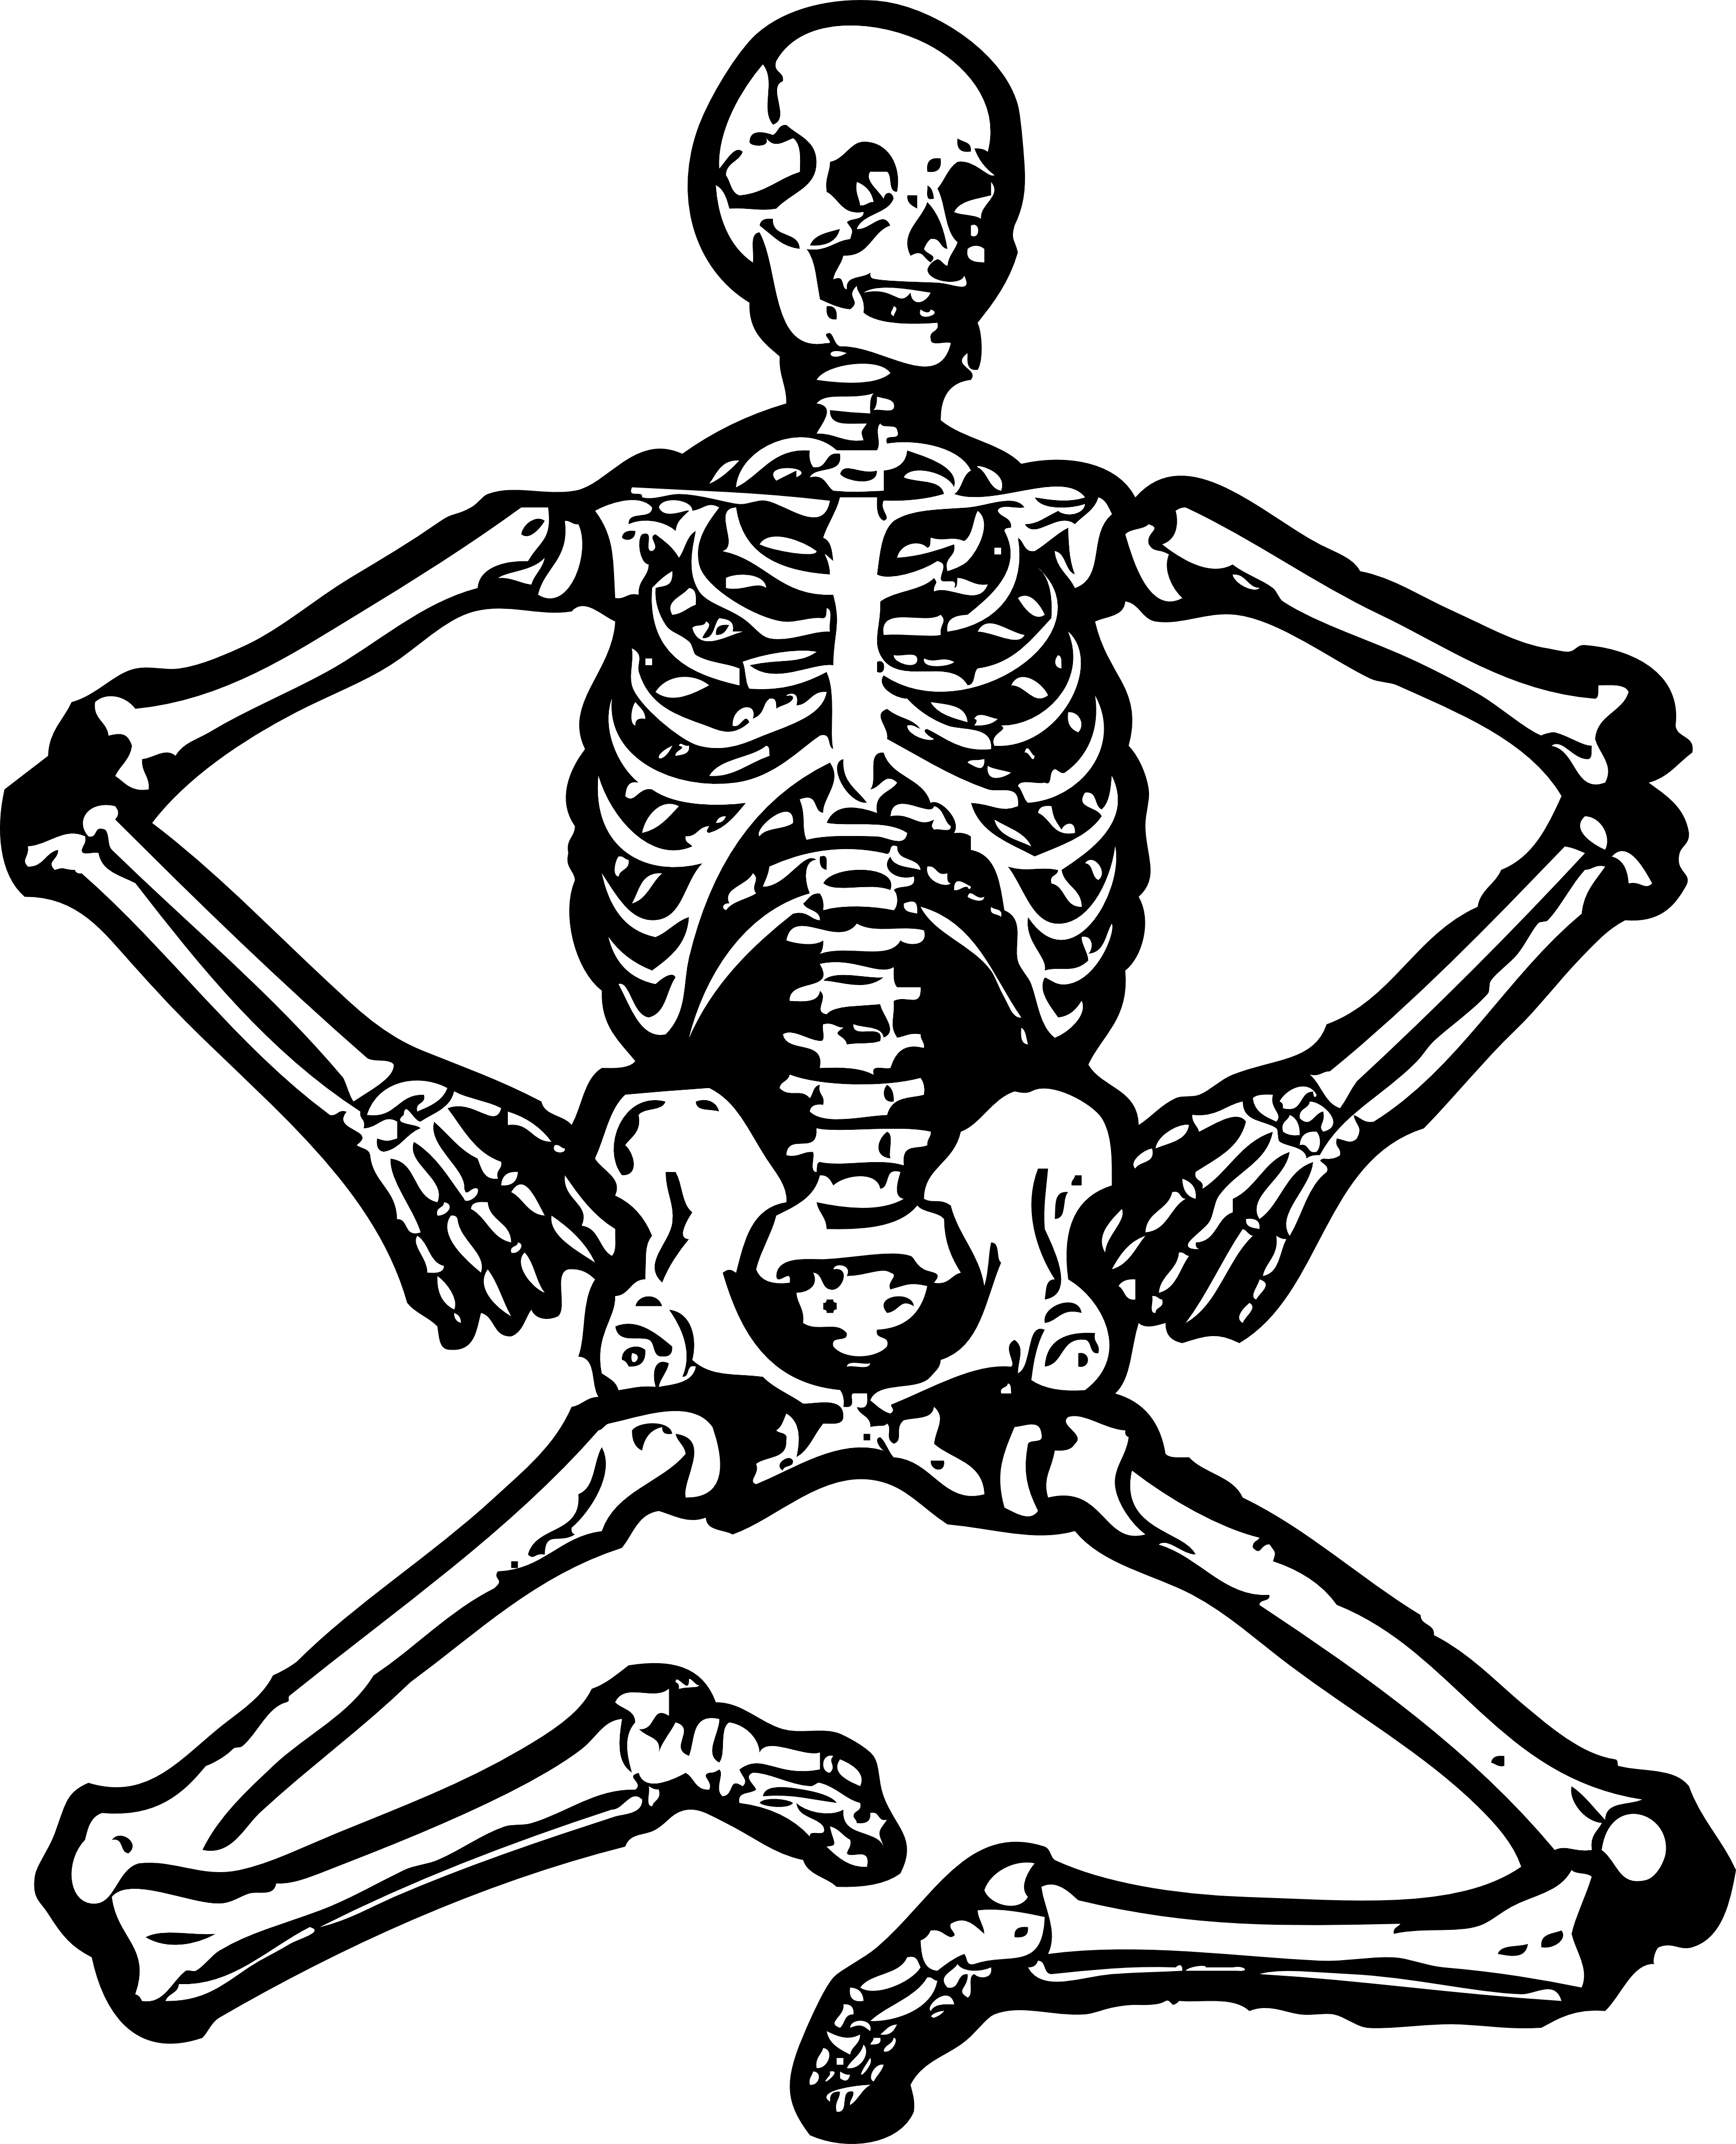 Free dancing skeleton clipart clip art royalty free stock Free Pictures Skeleton, Download Free Clip Art, Free Clip Art on ... clip art royalty free stock